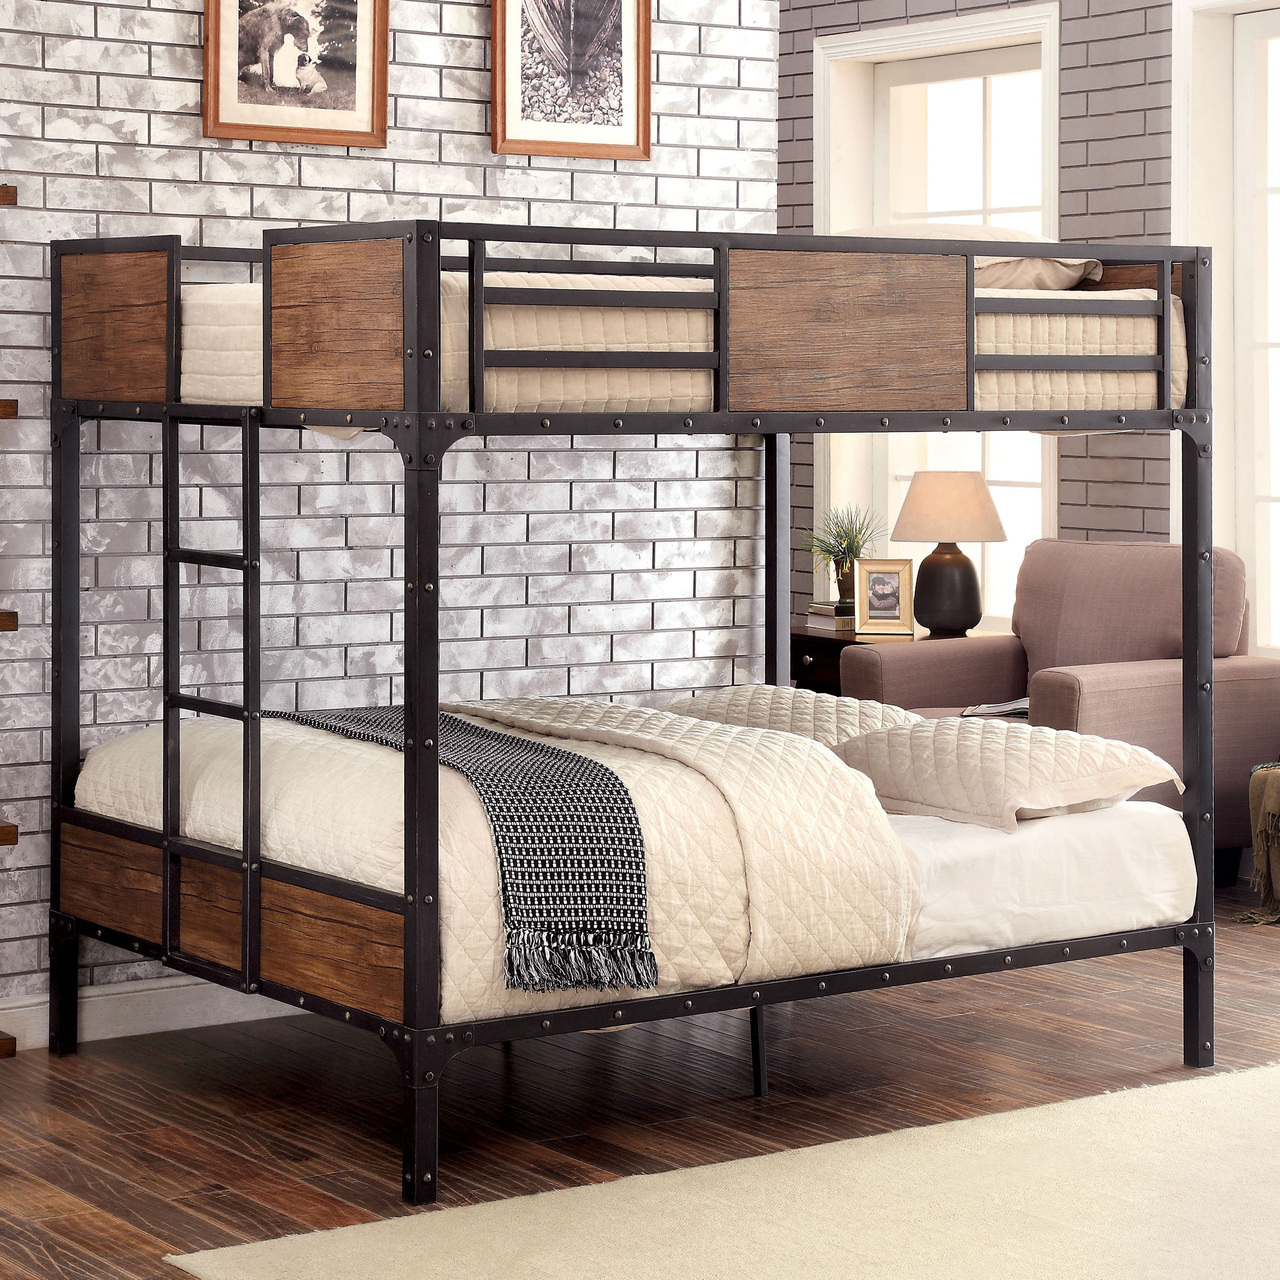 Image of: Full Bunk Bed Design